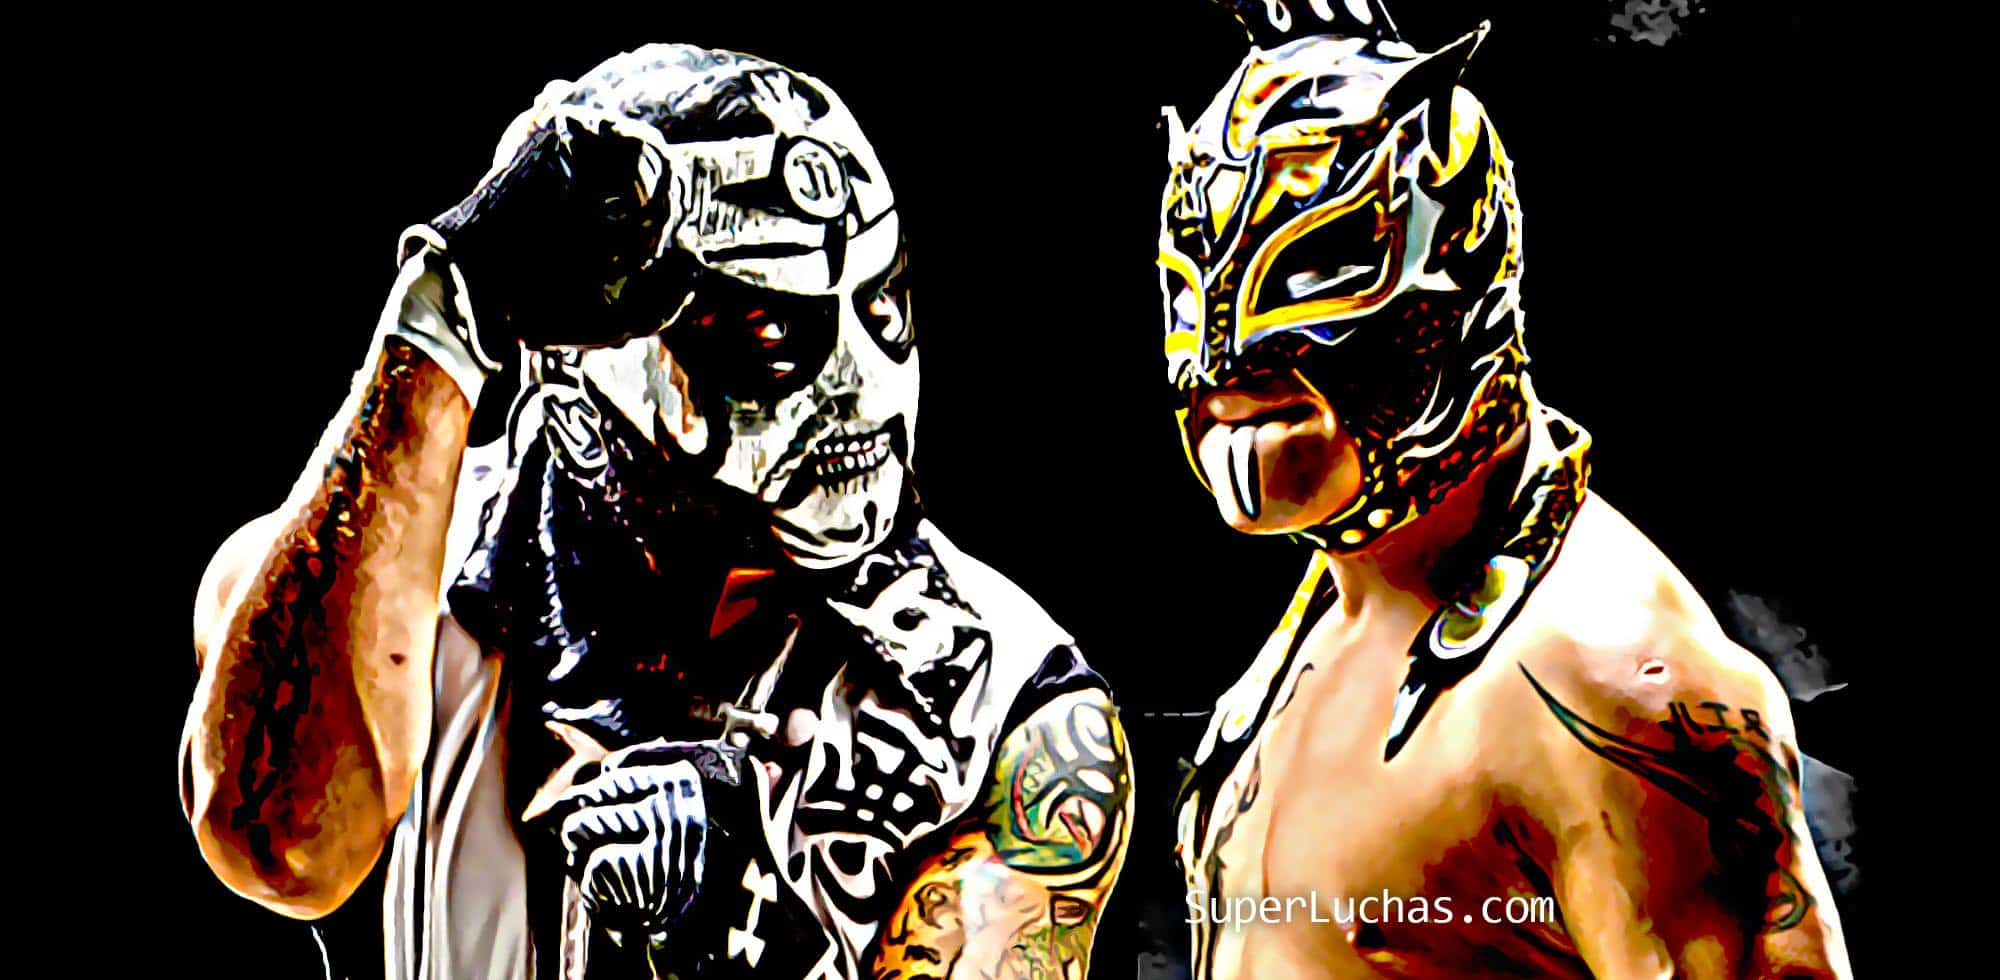 The Crash: Lucha Brothers siguen reinando 34